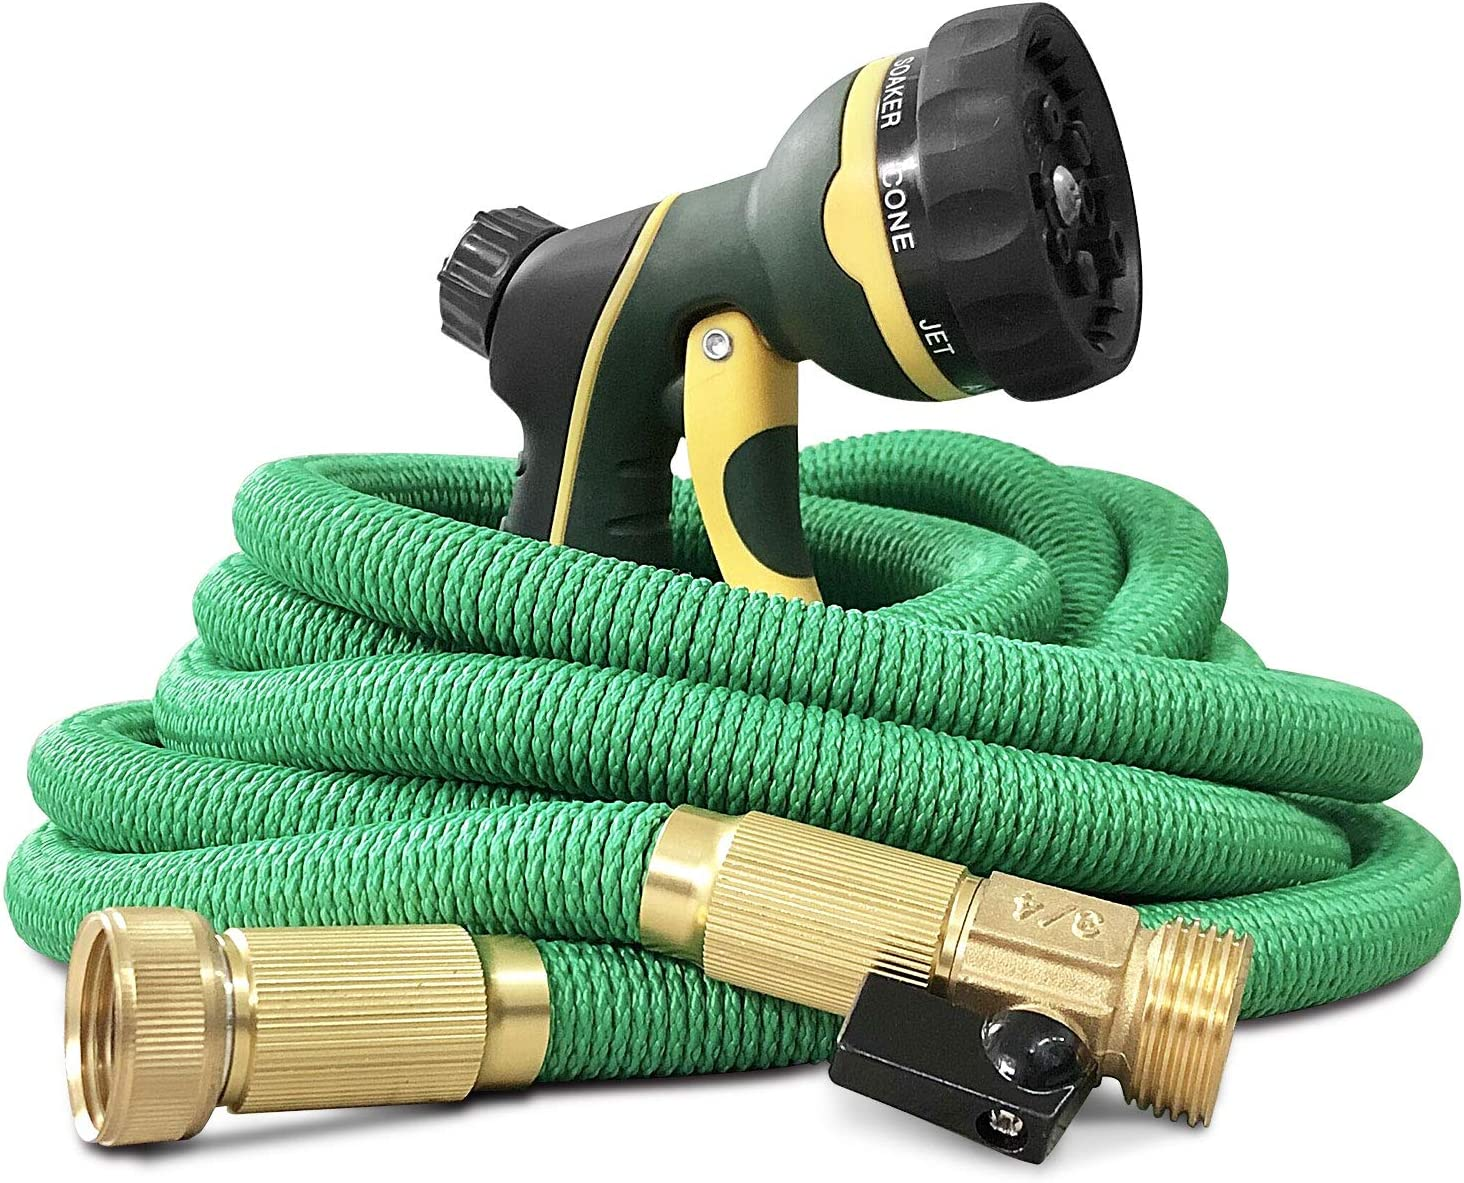 NGreen Expandable and Flexible Garden Hose - 25/50/75/100 Feet Strongest Triple Core Latex and Solid Brass Fittings Free Spray Nozzle 3/4 USA Standard Easy Storage Kink Free Water Hose (50 FT)